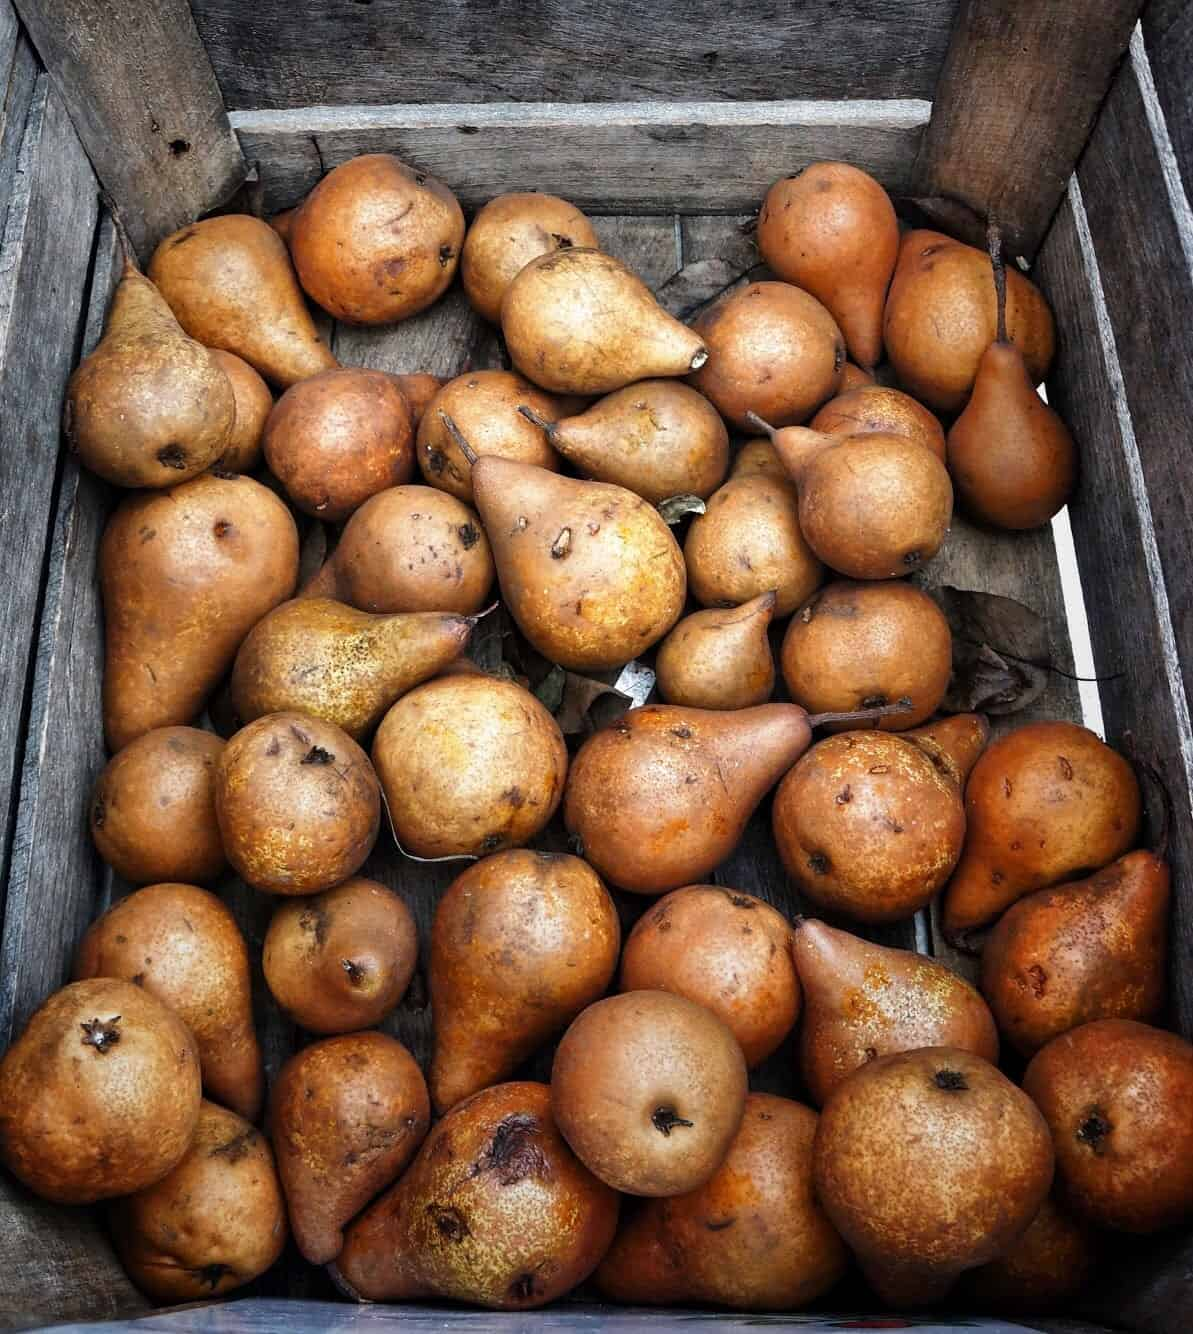 bosc pears in a wood crate